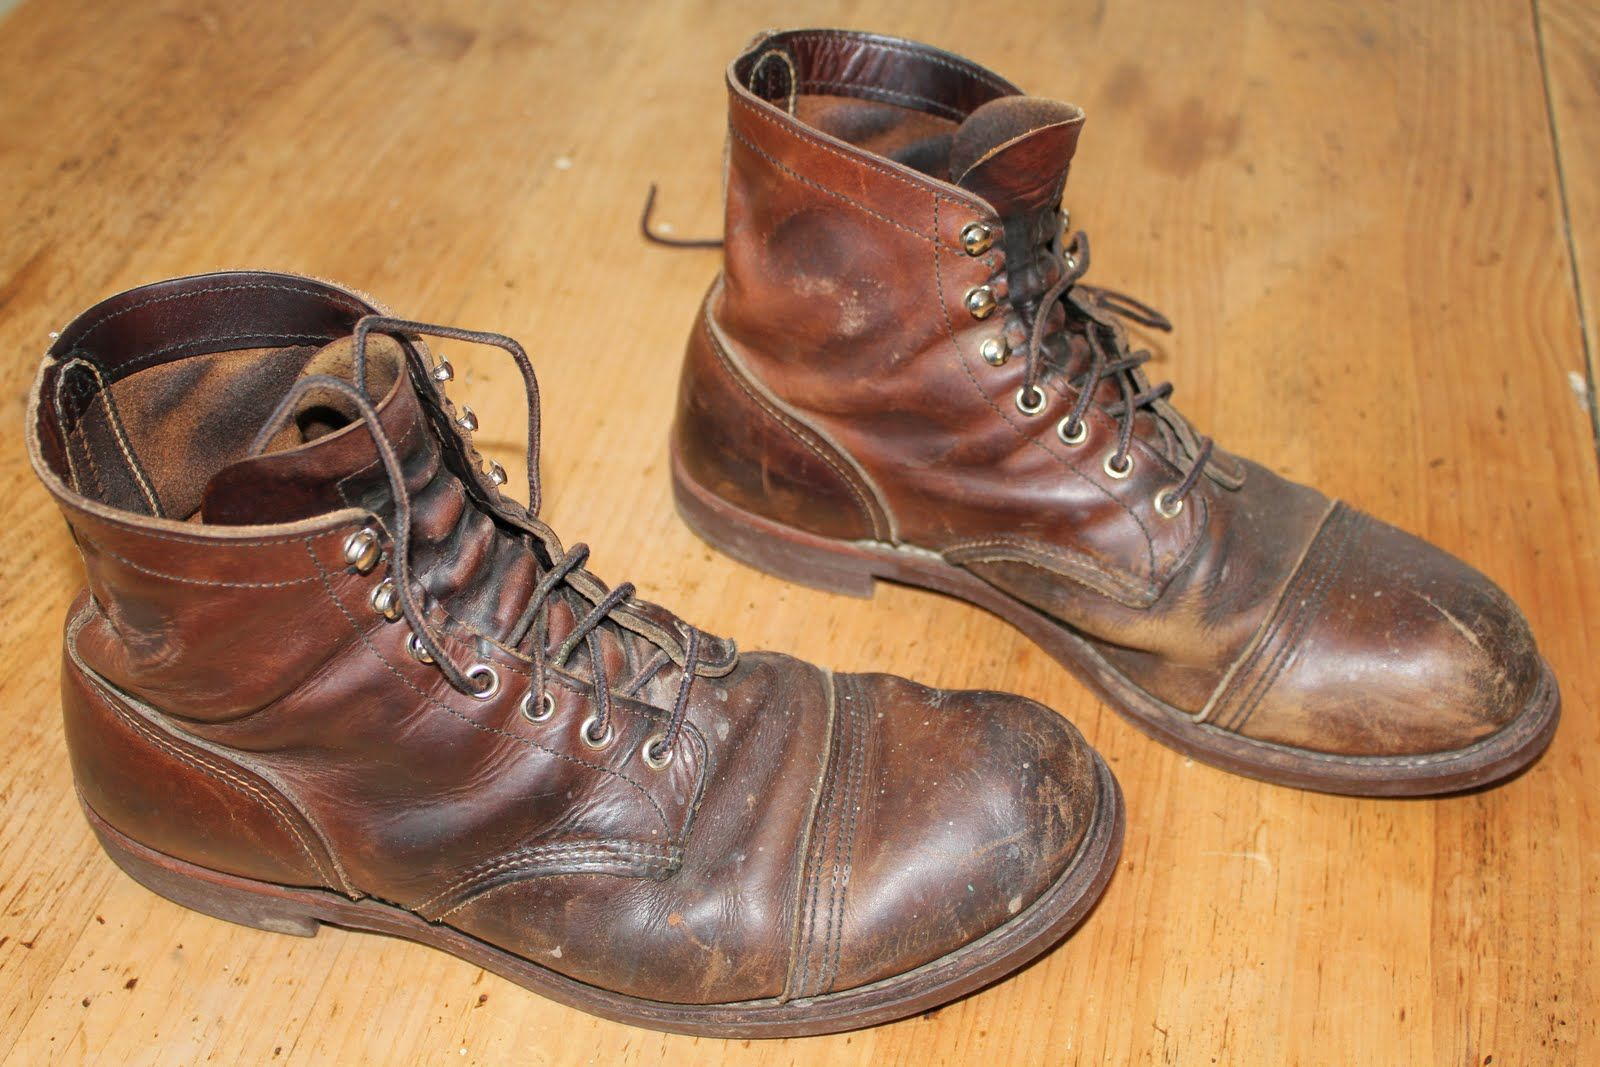 The company Red Wing is known for their high quality work boots ...